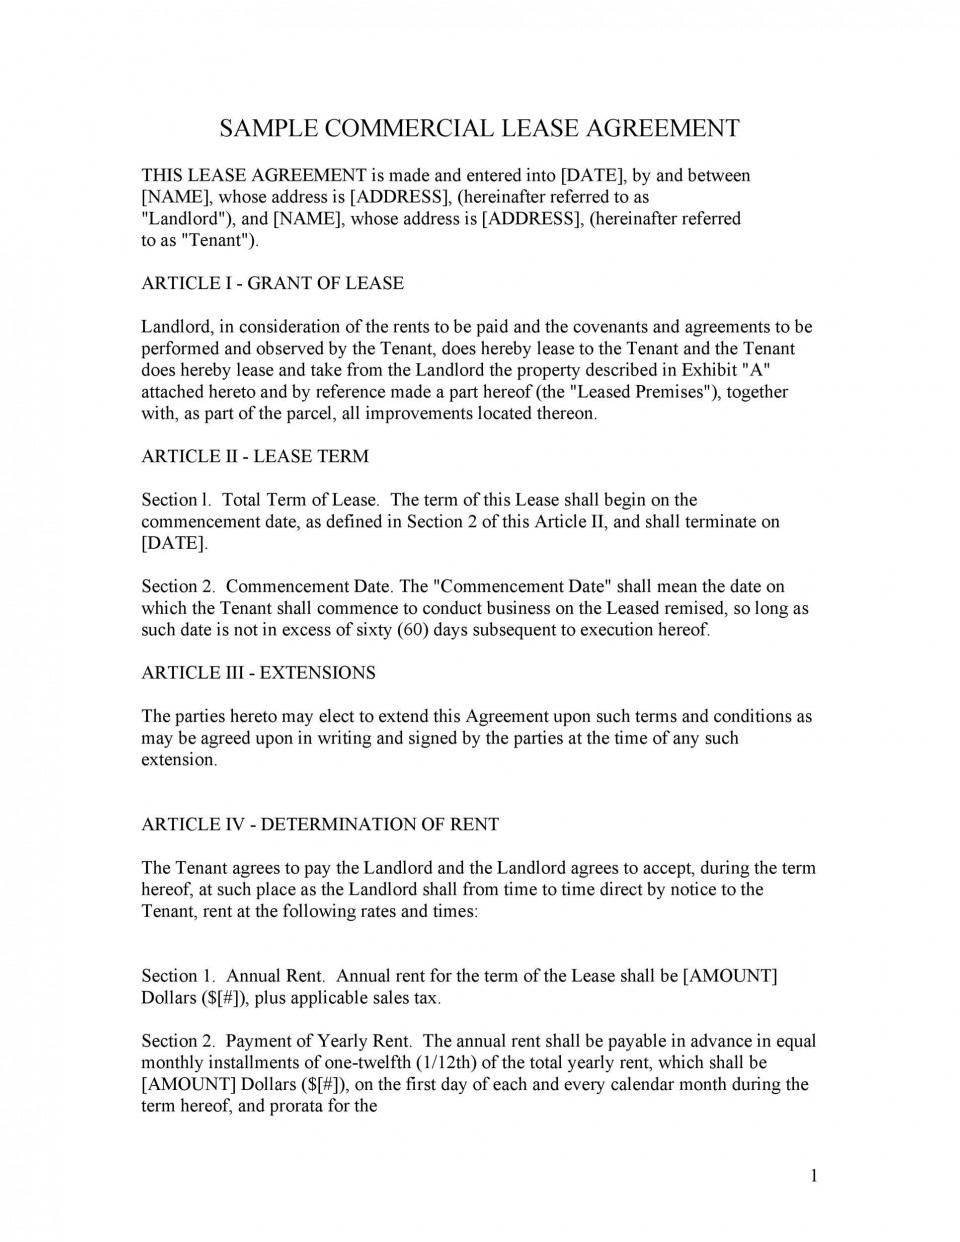 003 Wondrou Free Lease Agreement Template Word High Definition  Commercial Residential Rental South Africa960